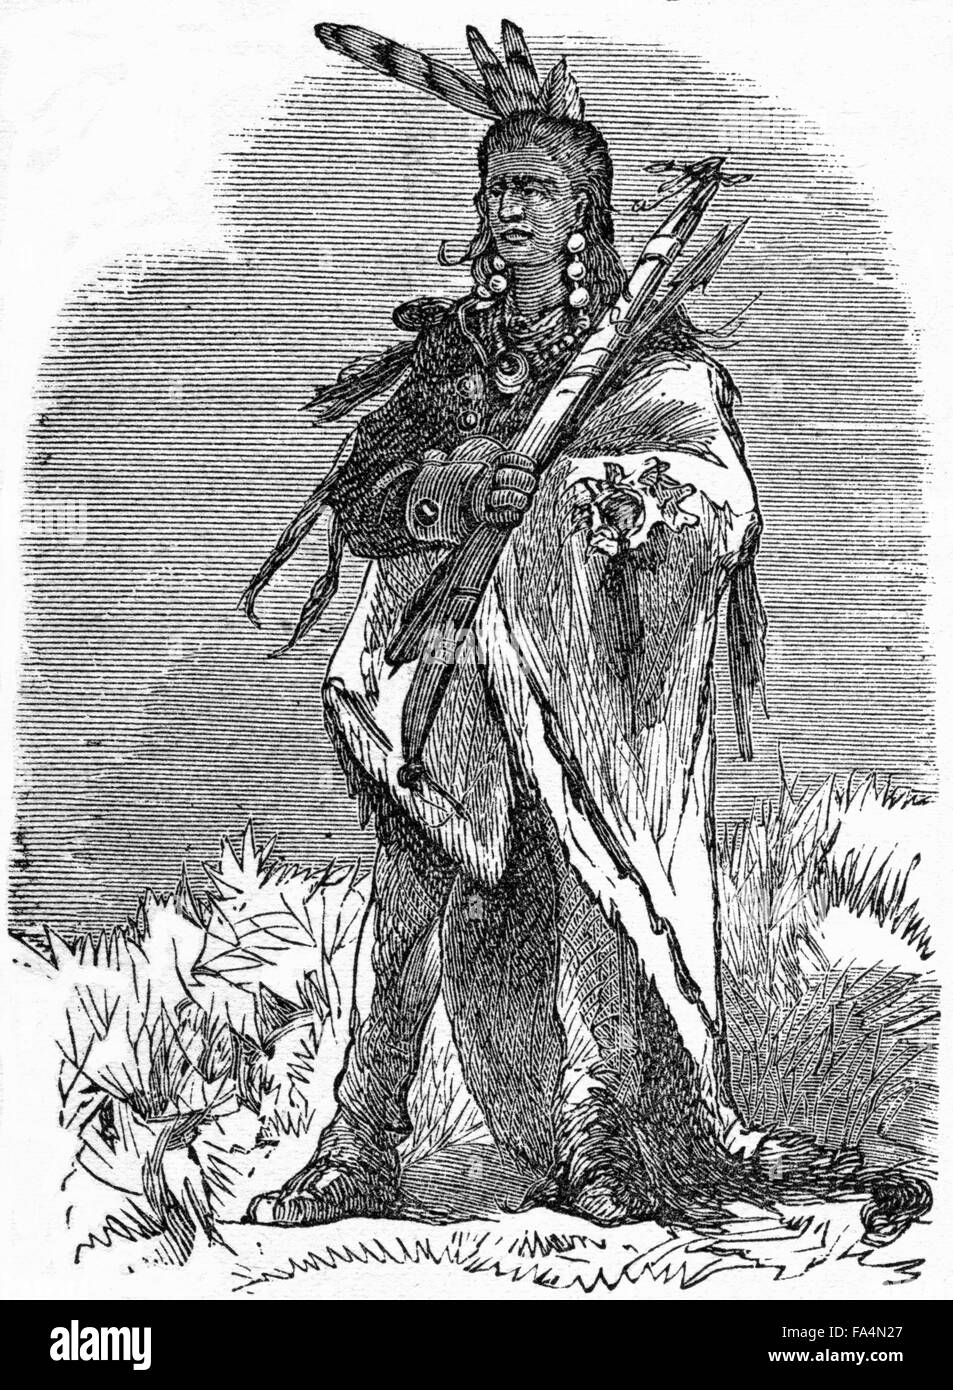 "Pontiac (1720-1769), Ottawa War Chief, Book Illustration from ""Indian  Horrors or Massacres of the Red Men"", by Henry Davenport Northrop, 1891"